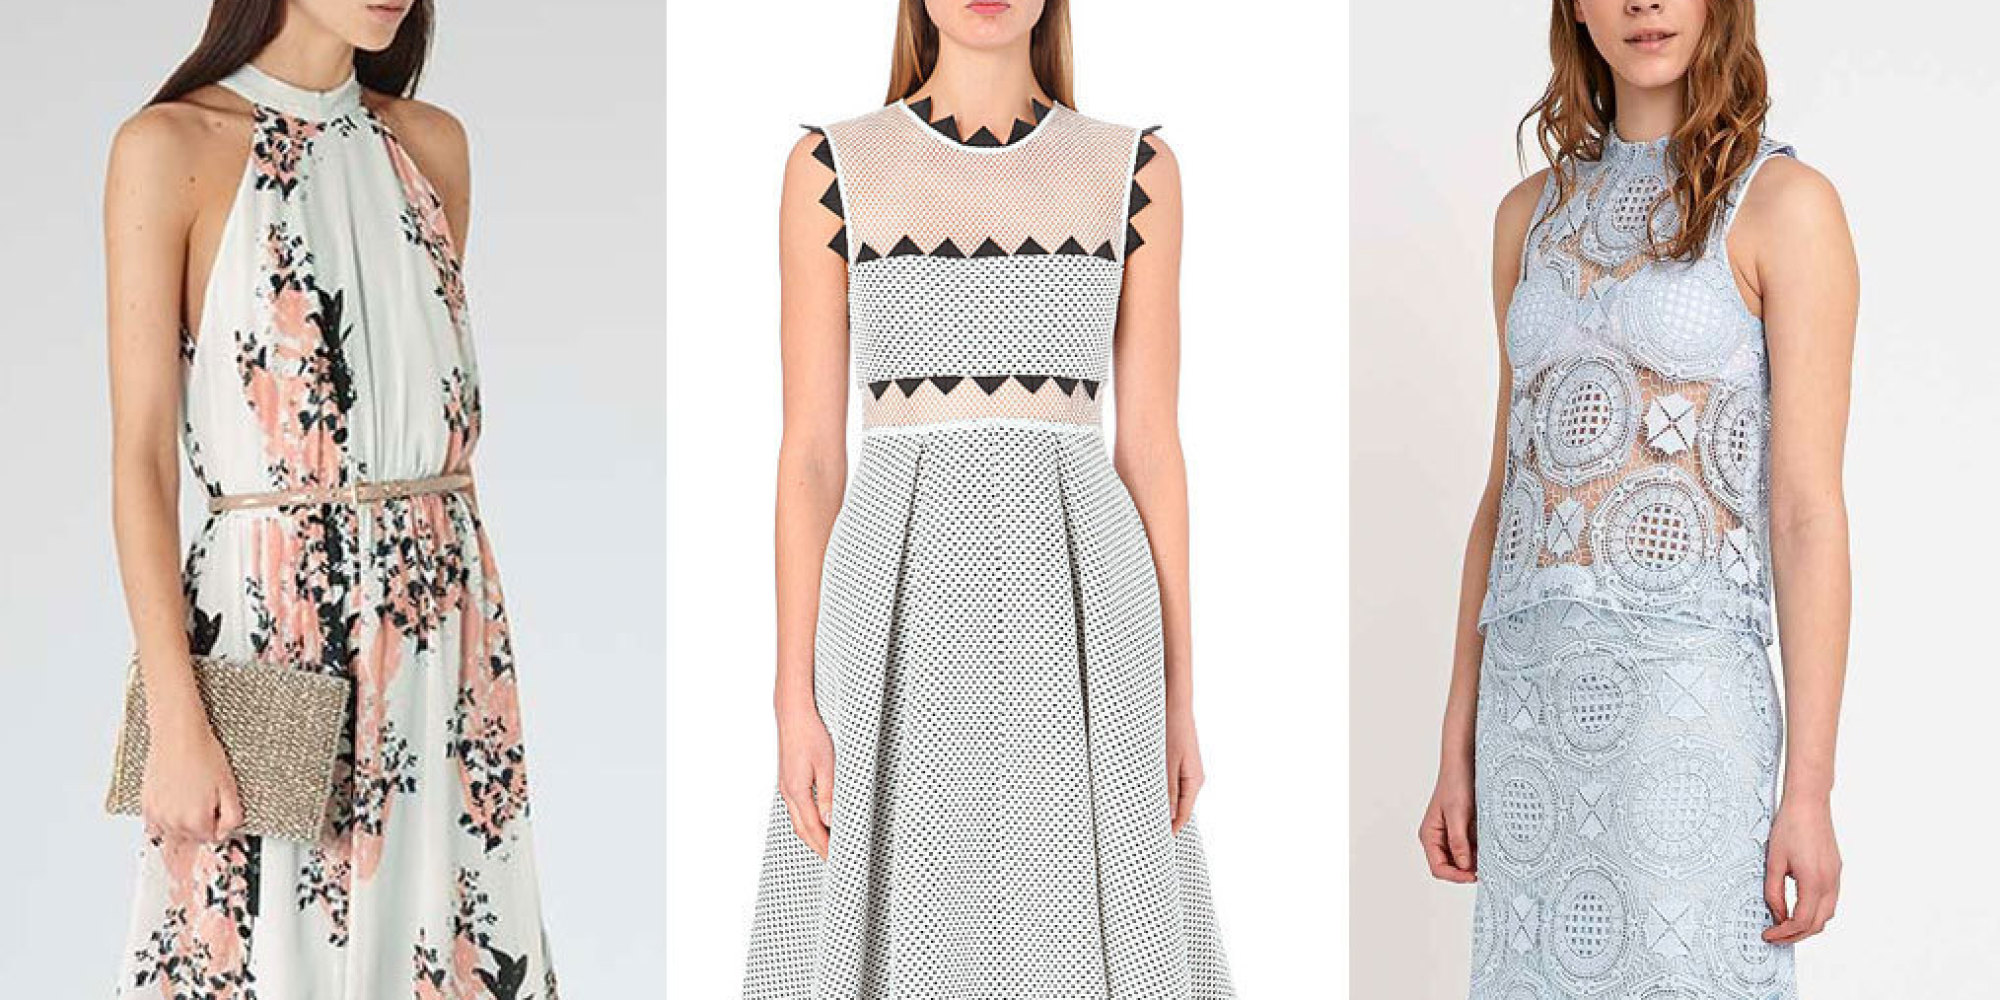 Summer Wedding Guest Dresses And Outfits As Recommended By Fashion Buyers | HuffPost UK